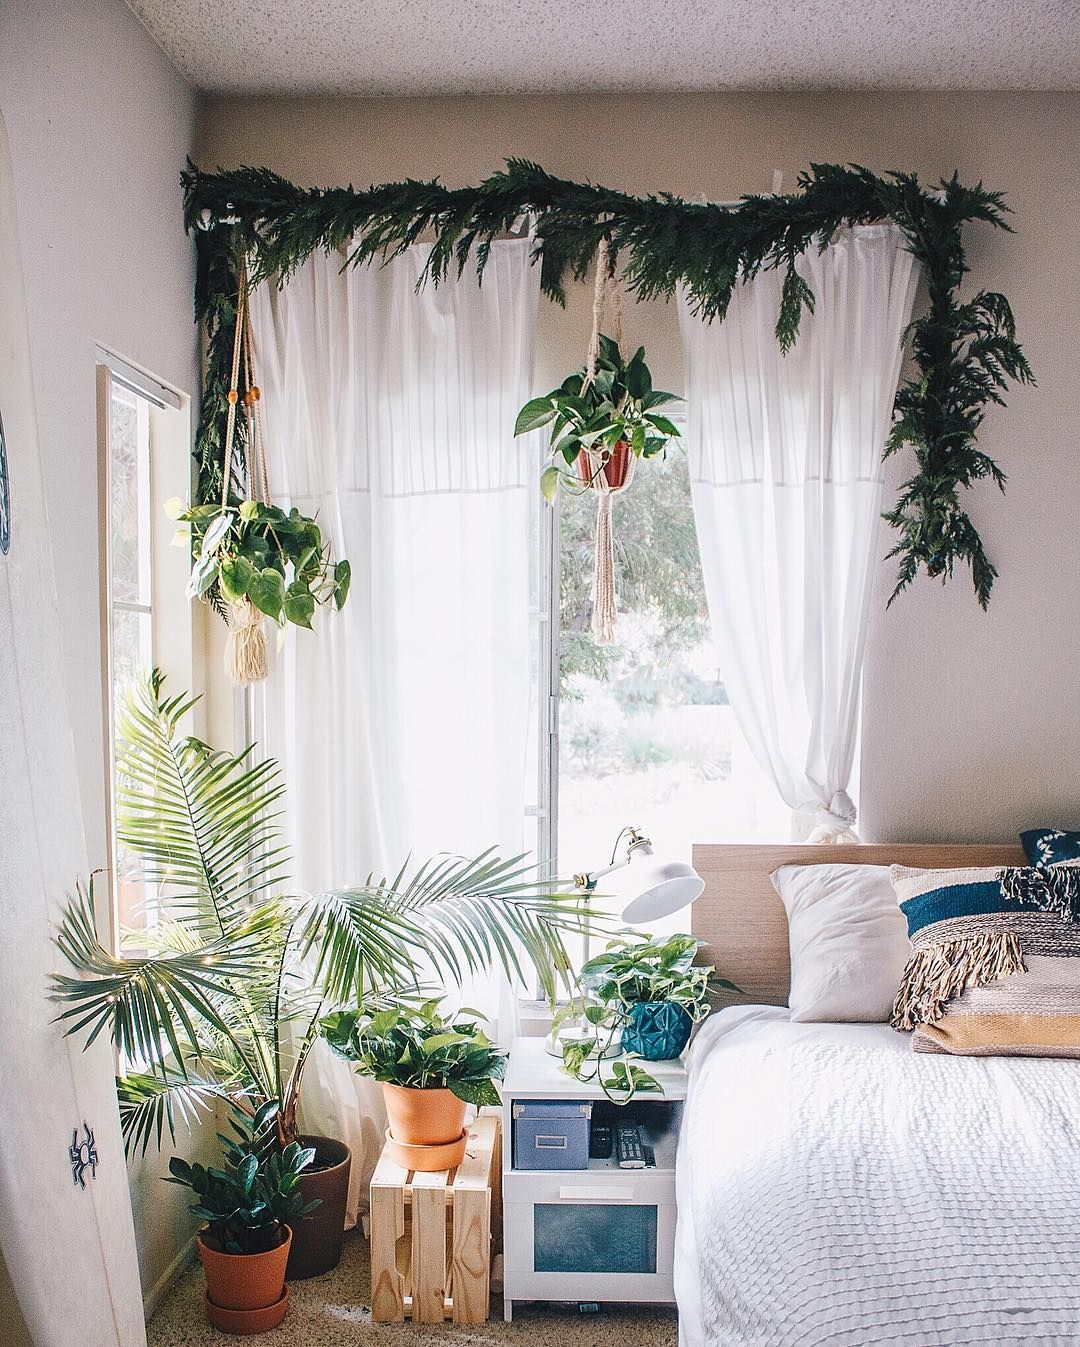 Pin by Urban Outfitters on Decorate | Home Decor, Jungle ...